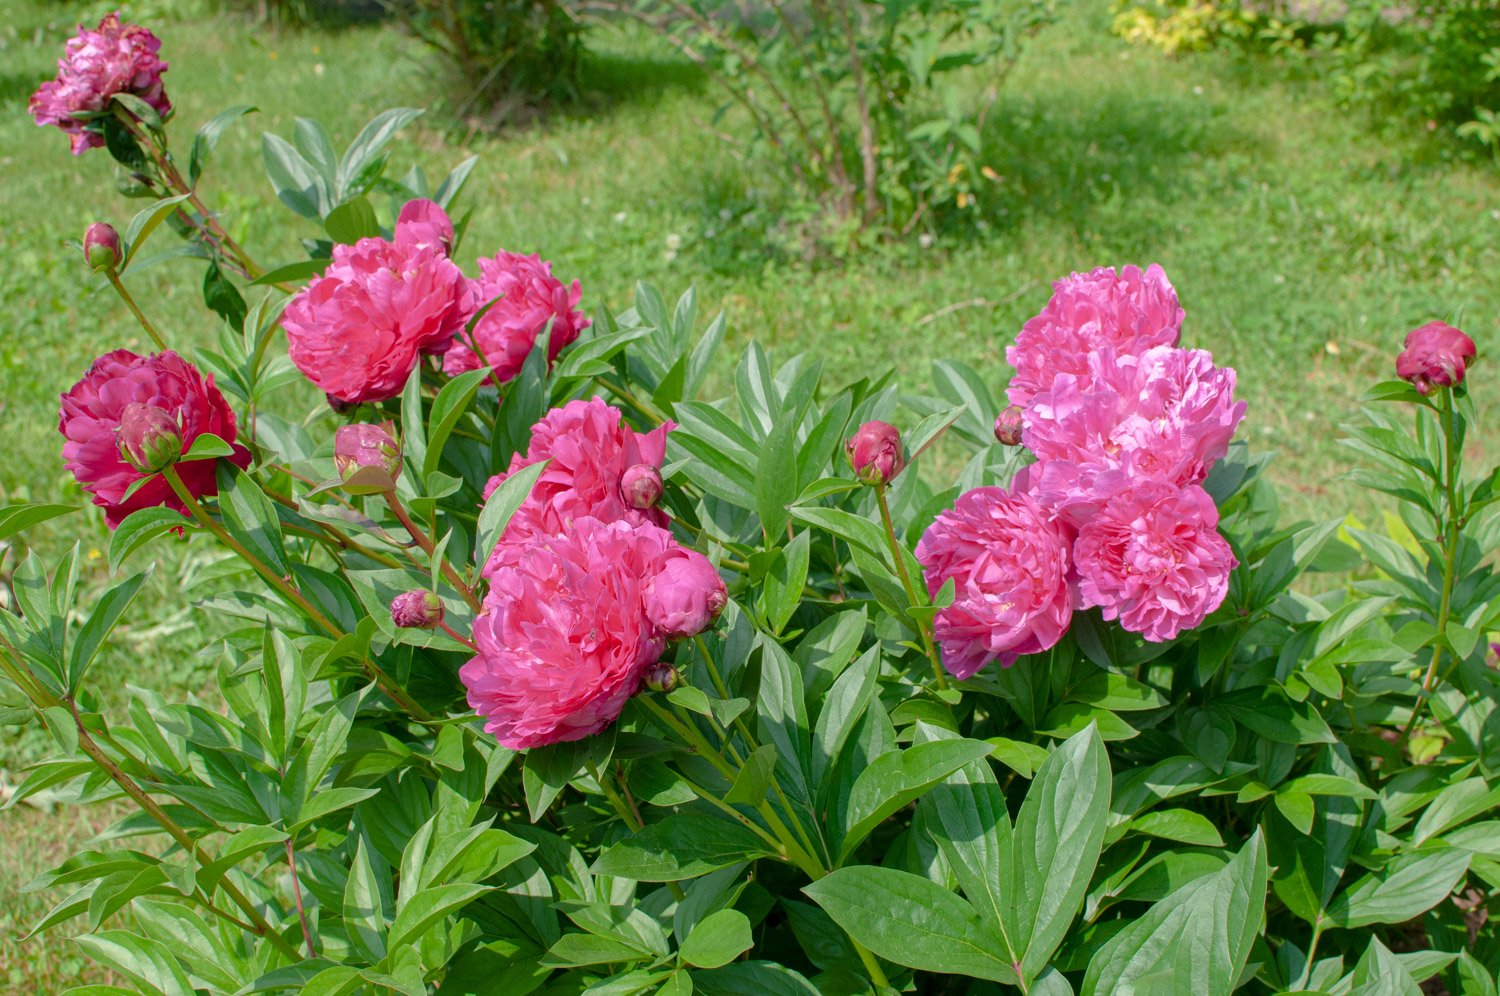 Ruffled, pink blooms of Peony 'Karl Rosenfeld'